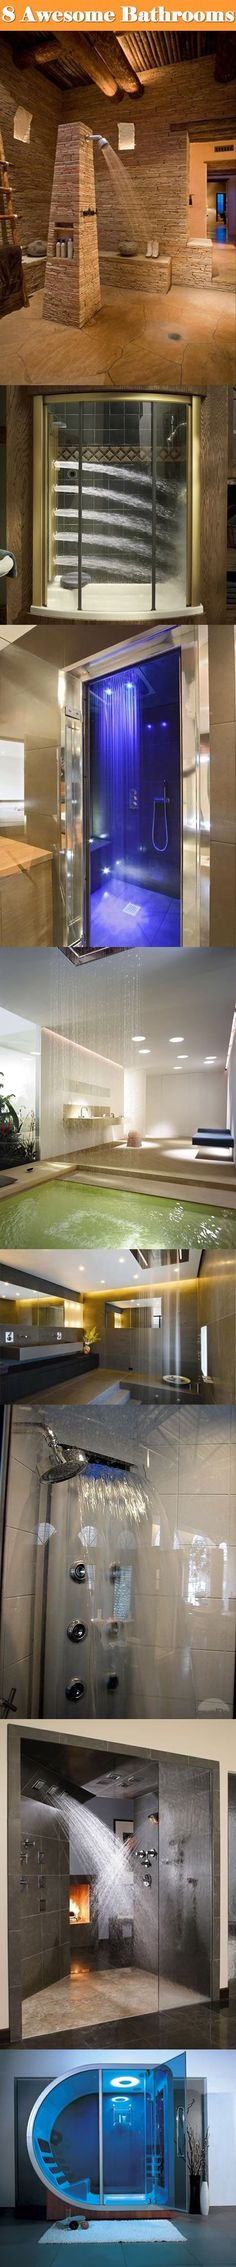 I need an 8 bathroom house...I want all these showers.